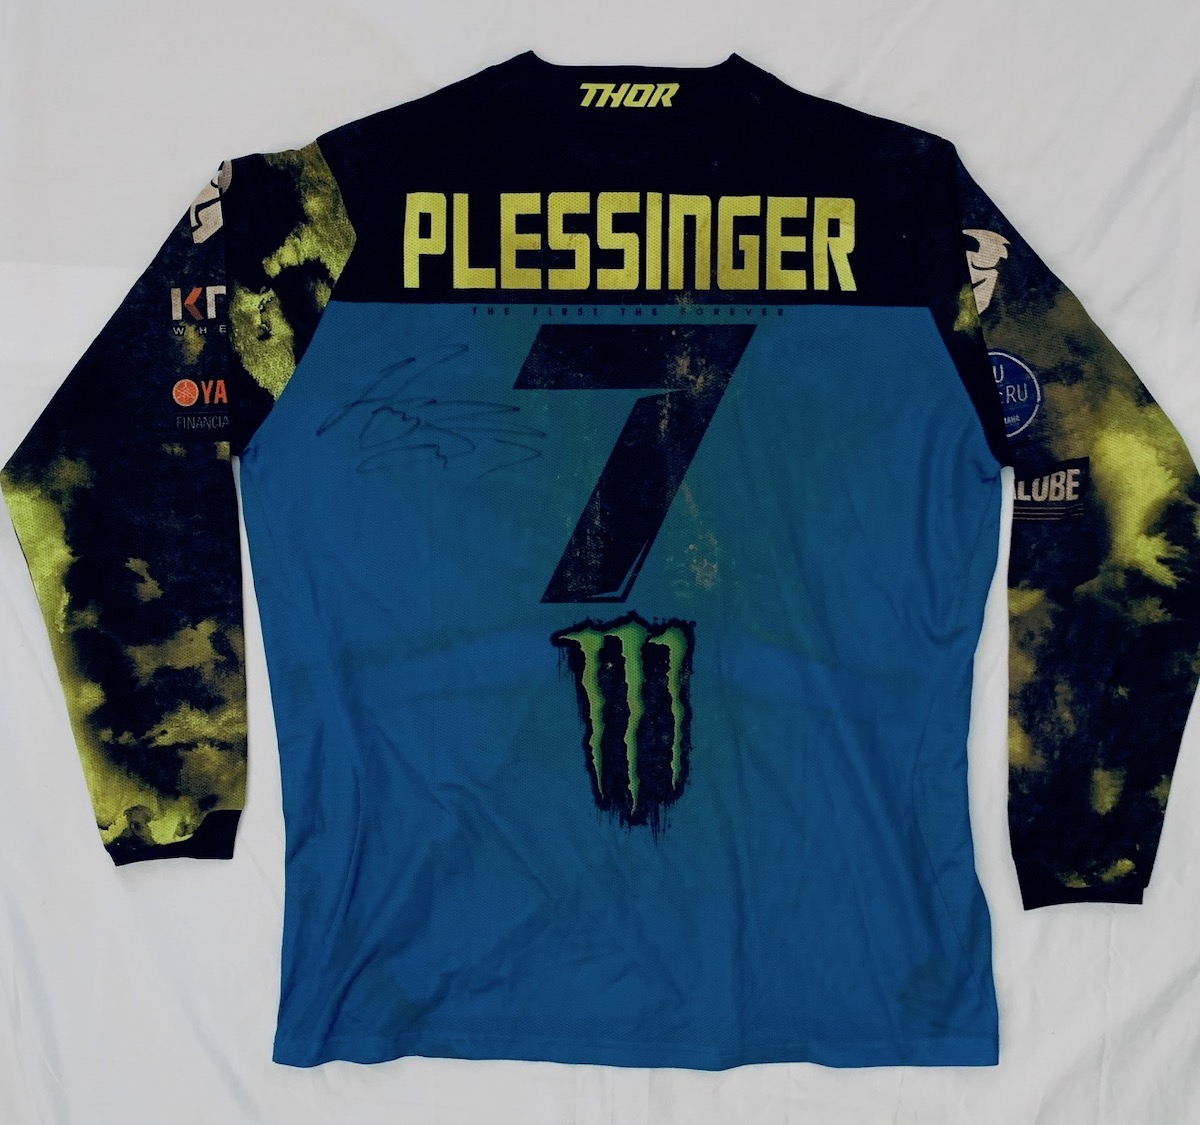 Road 2 Recovery Hosts Motocross Memorabilia Mania eBay Auction - Plessinger race jersey